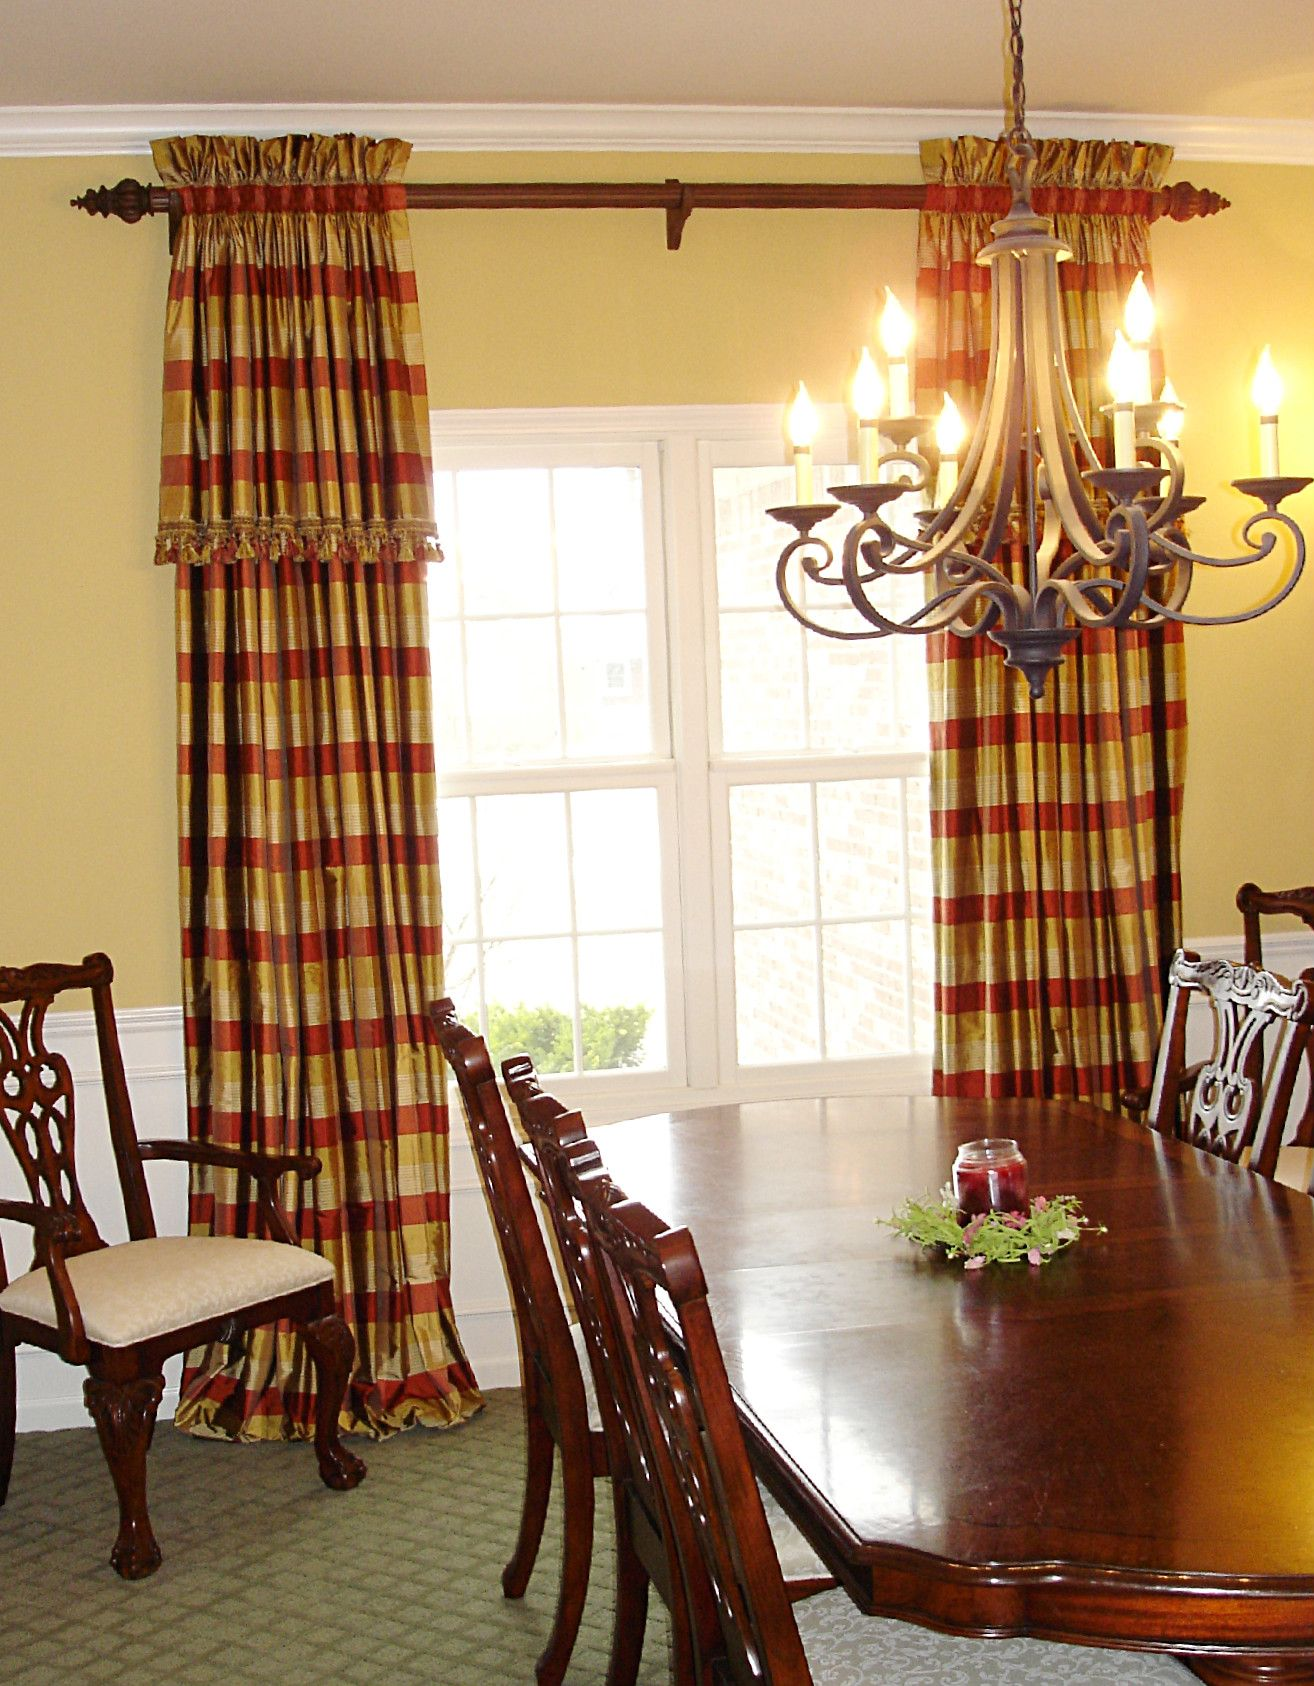 Elegant Dining Room Draperies  This Dining Room Is A Little Less New Dining Room Valances Design Inspiration